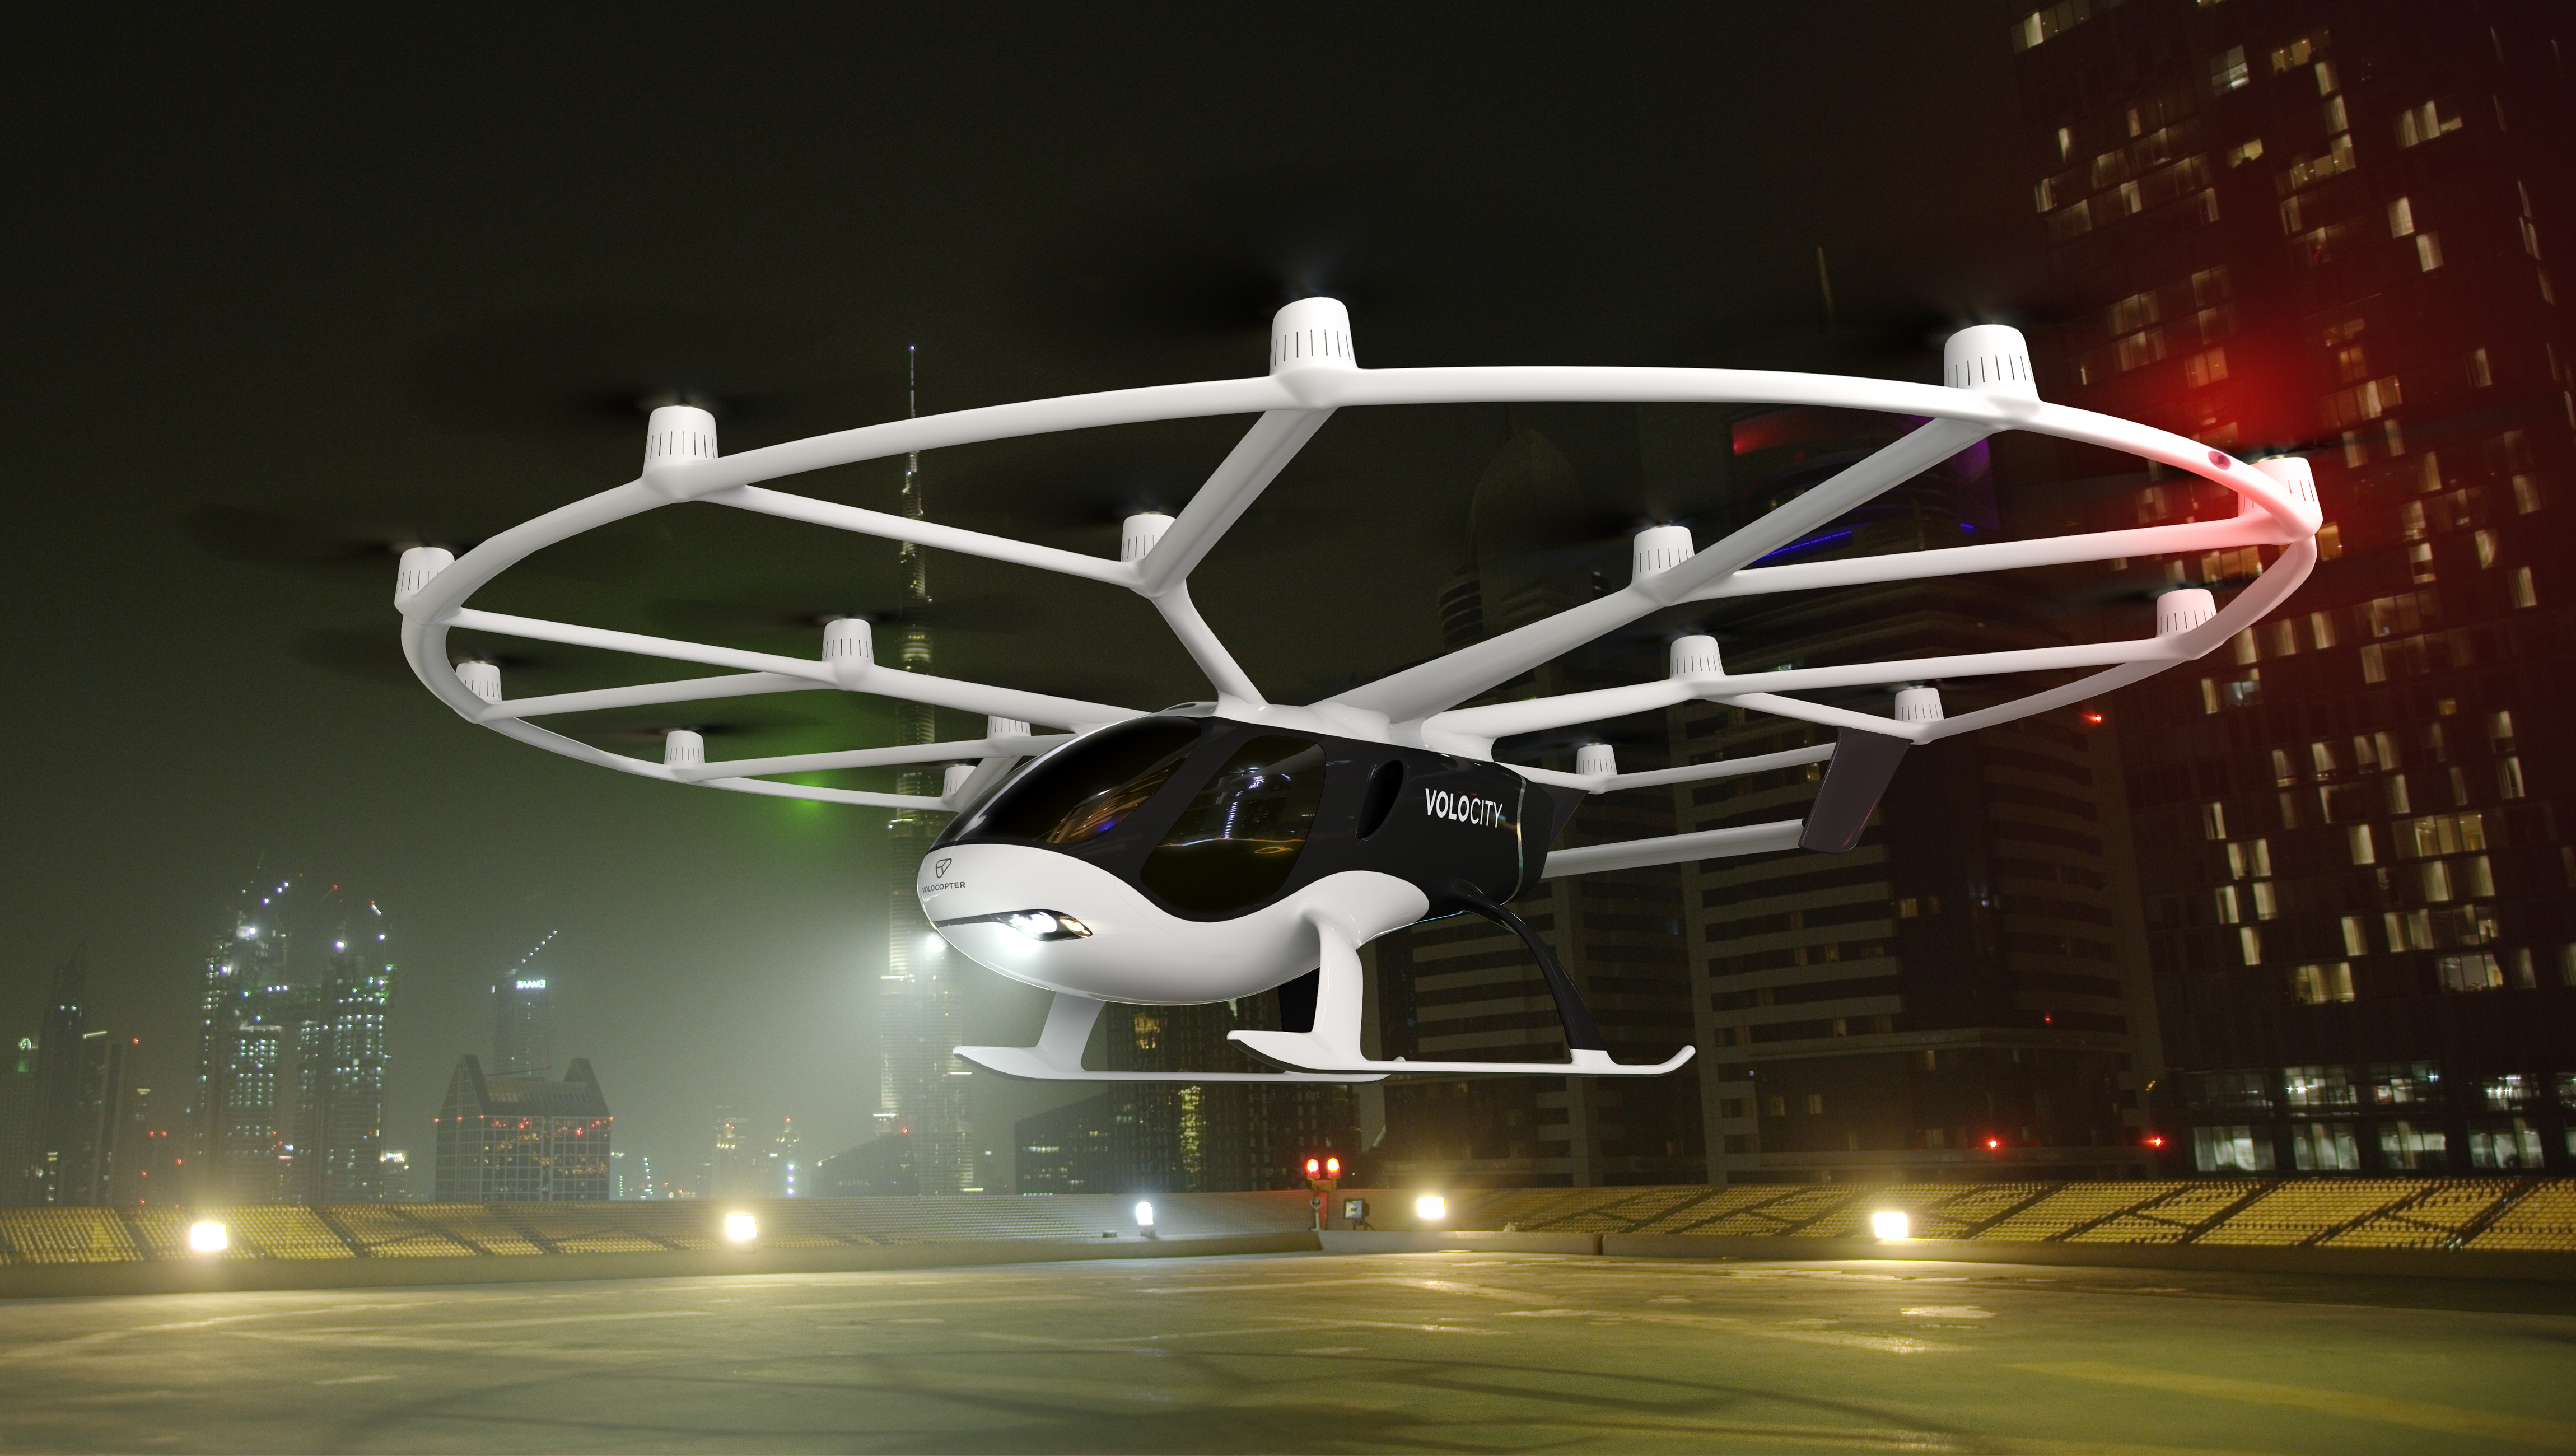 Volocopter reveals its first commercial aircraft, the VoloCity air taxi